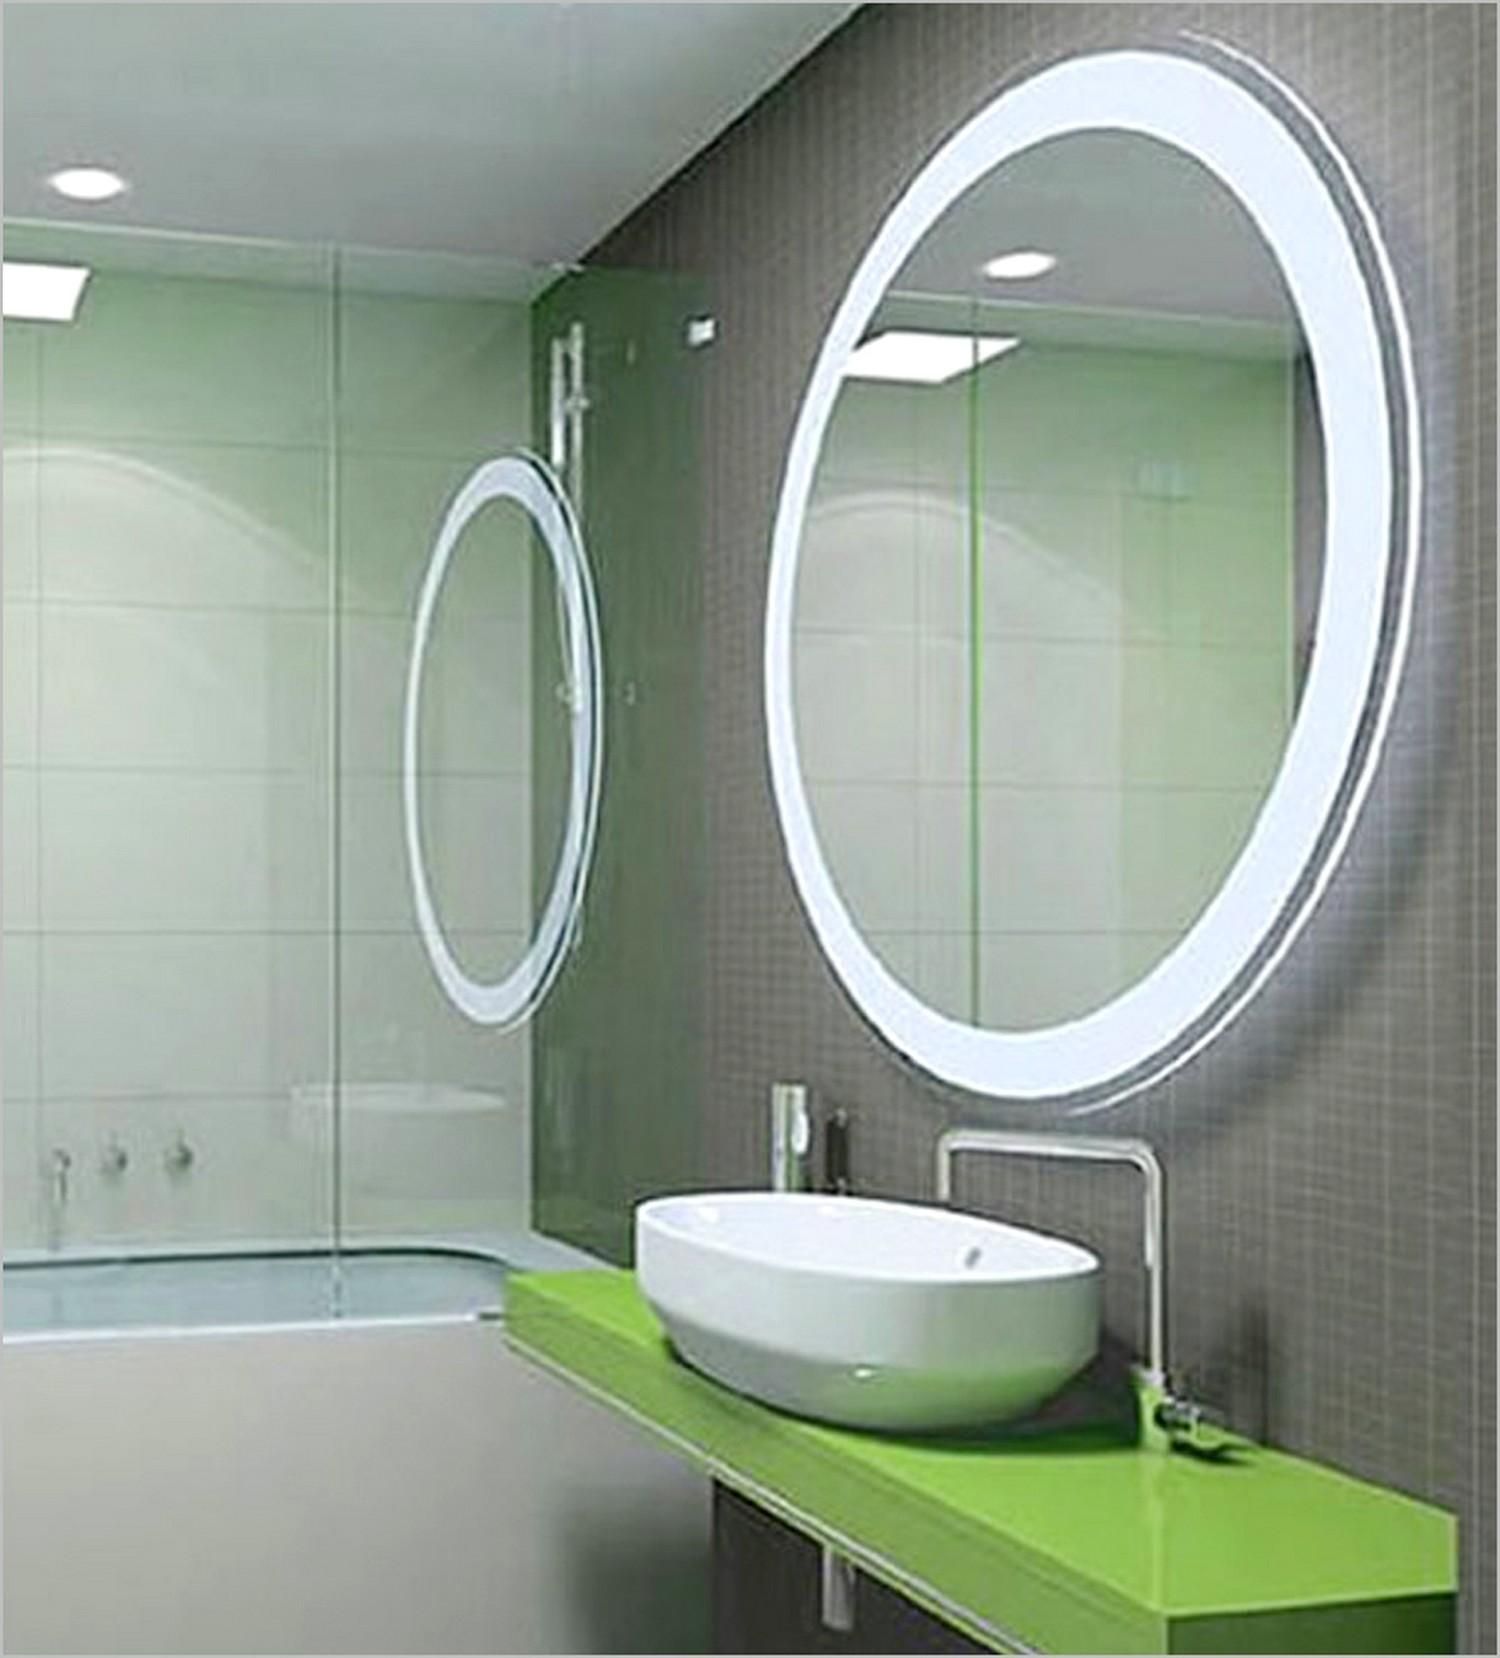 Oval Wall Mirror With Led Light For Bathroom Ideas – Surripui Within Light Up Bathroom Mirrors (Image 20 of 20)